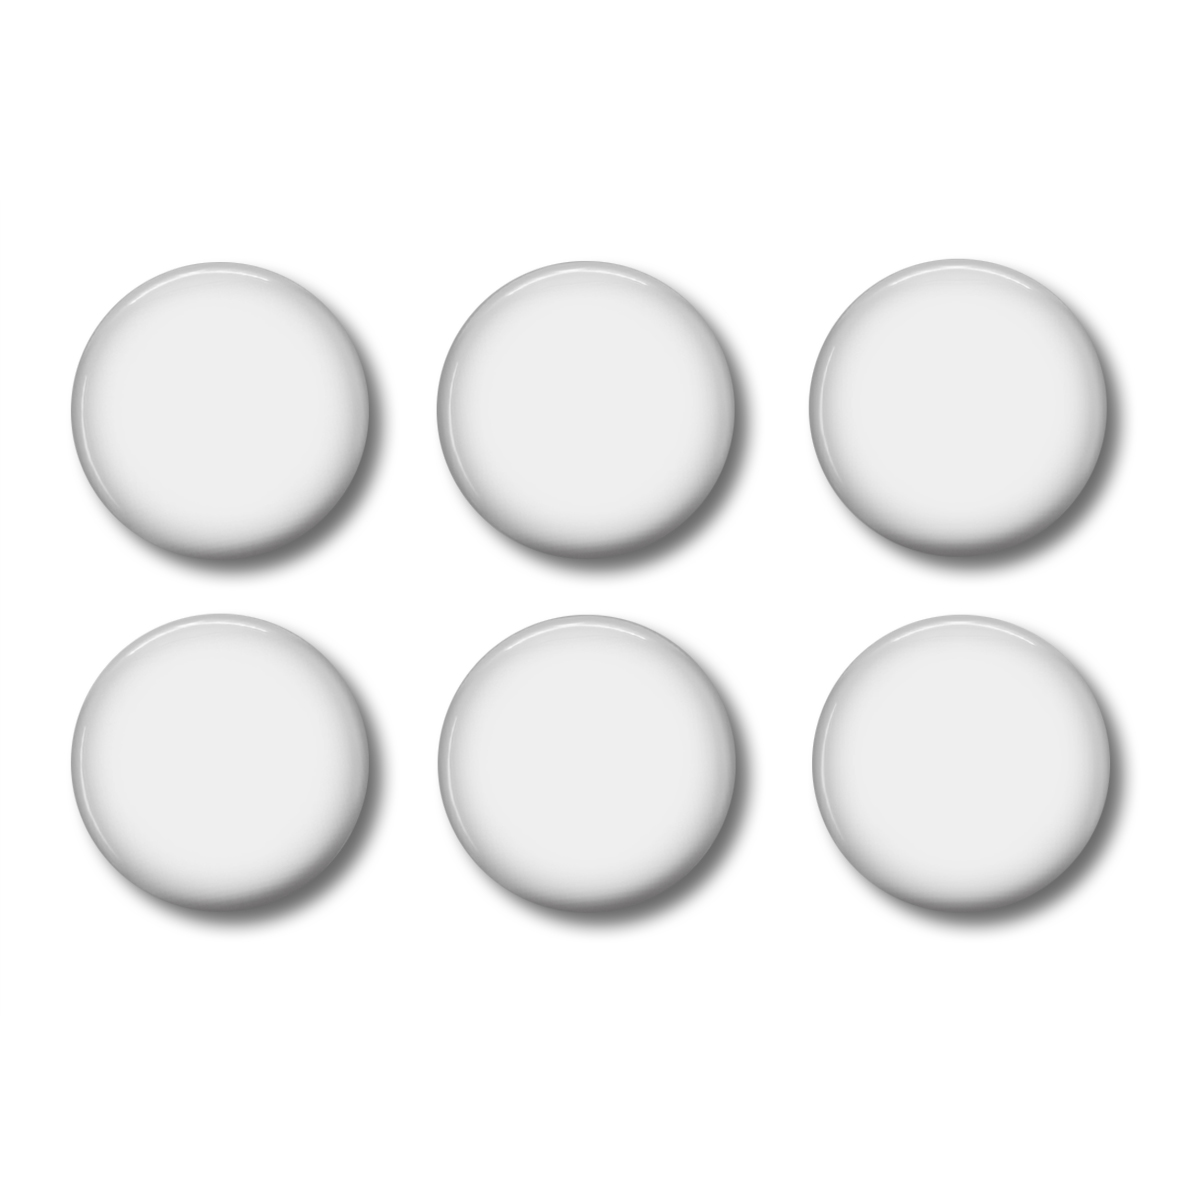 pin back buttons digital photo templates digitaltemplates bestpeople ca